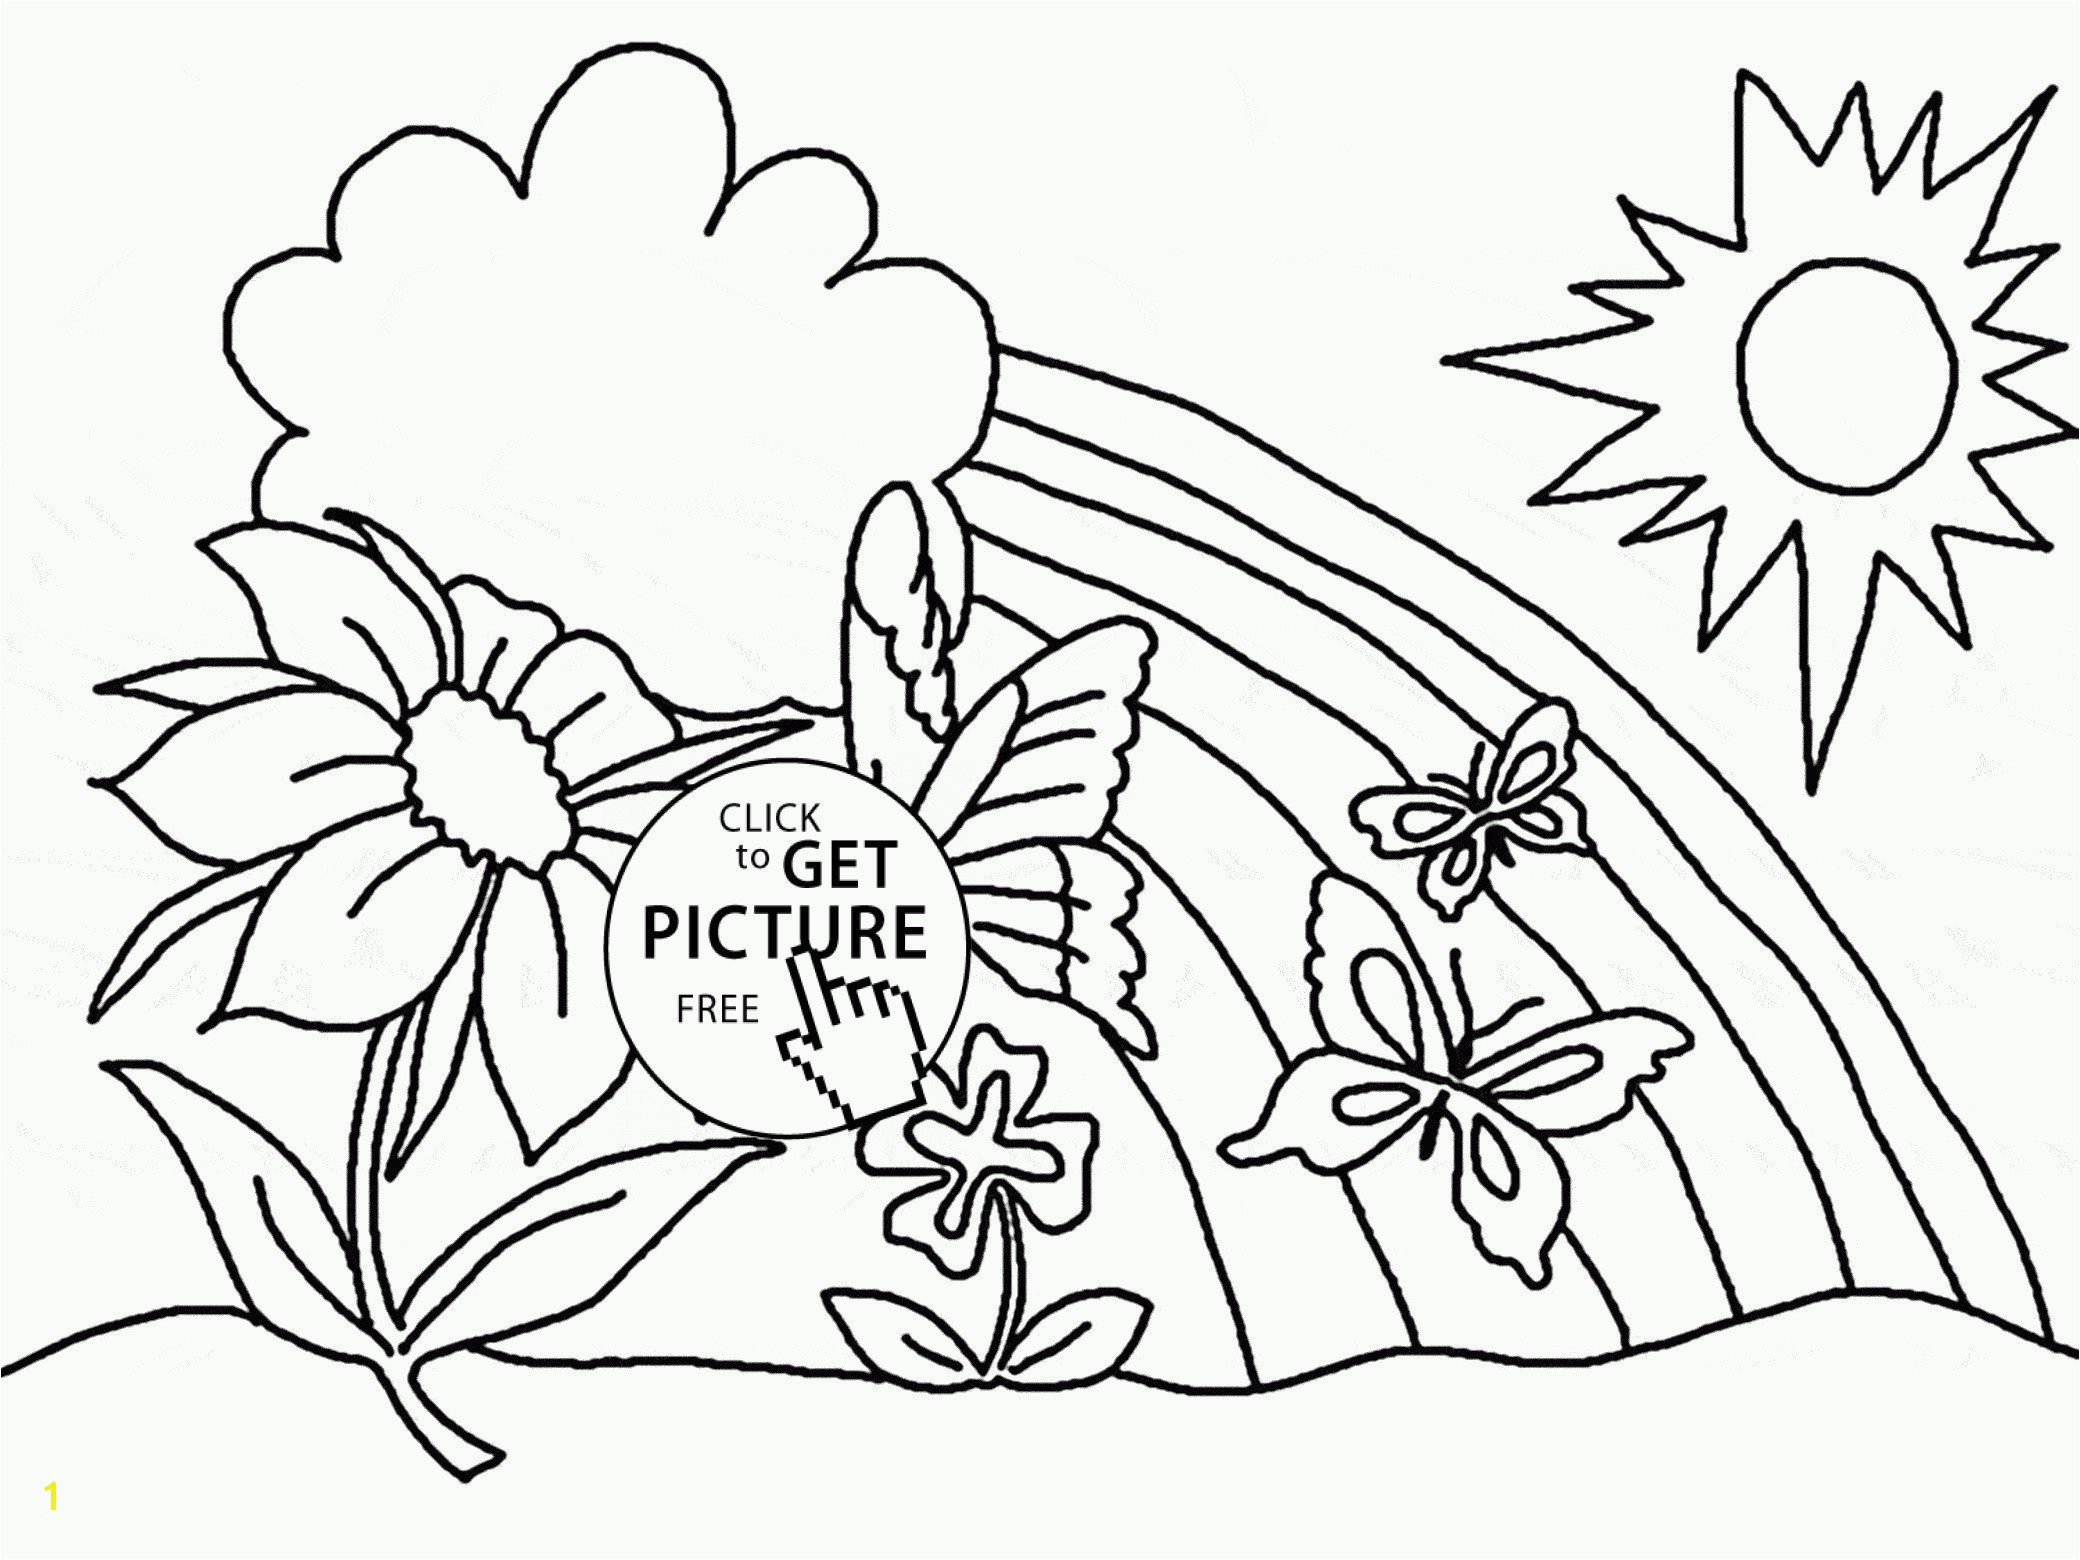 Flower Coloring Pages to Print Spring Coloring Pages Spring Coloring Pages Best Printable Cds 0d